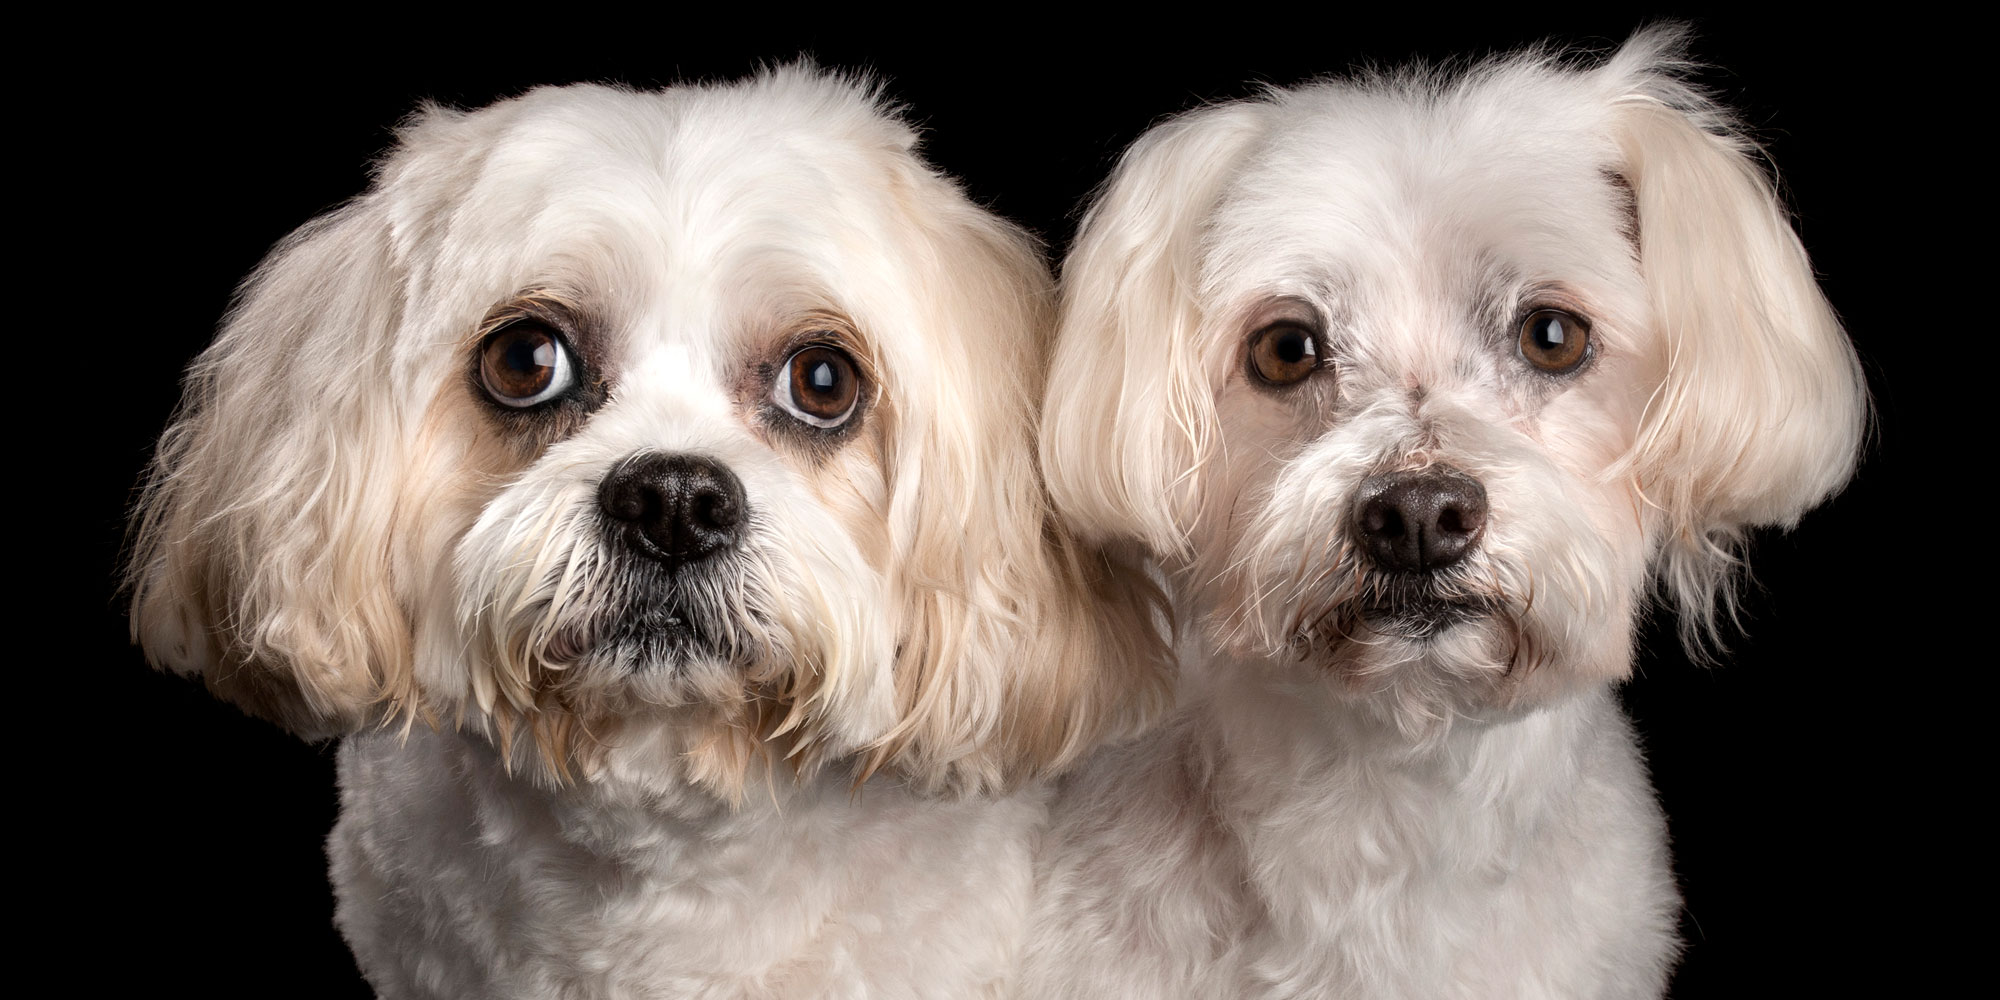 white and tan fur siblings maltese terrier girl and maltese cavalier cross boy